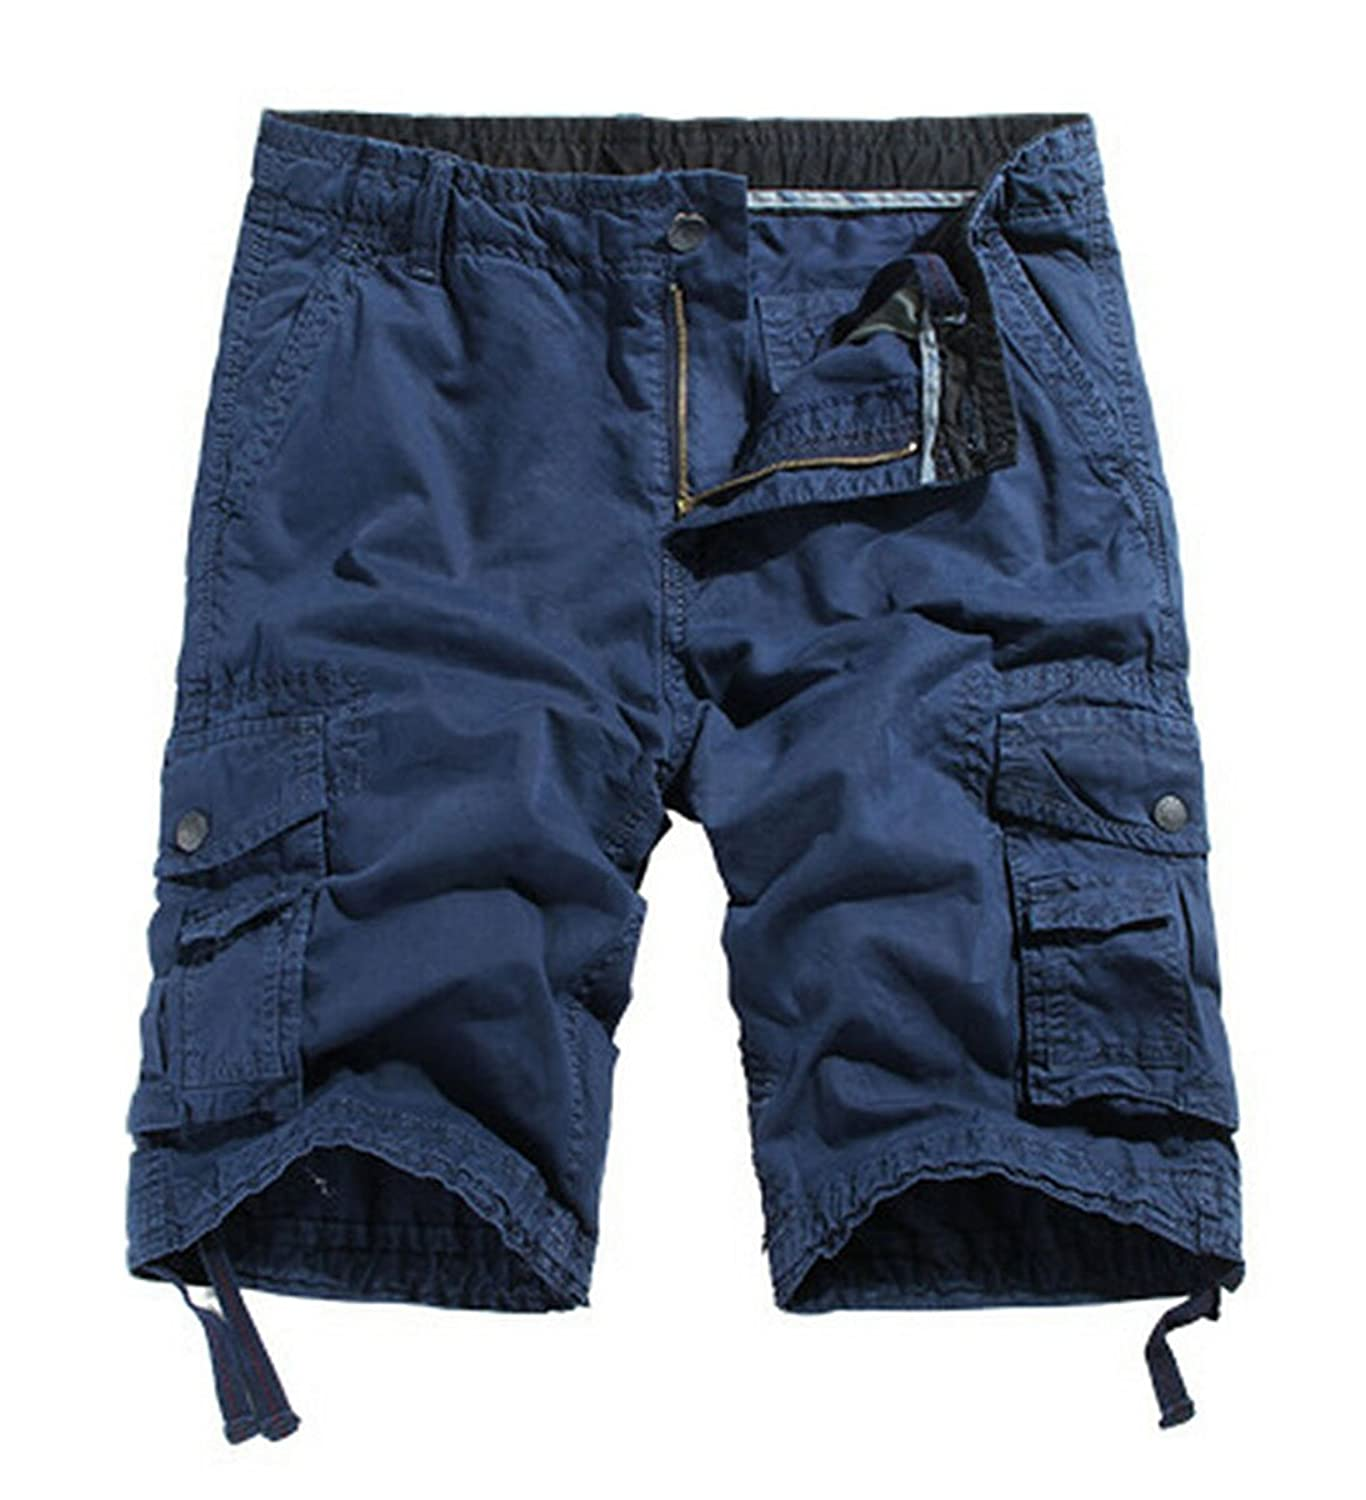 MR. R Men's Durable Relaxed Fit Multi Pockets Cargo Shorts